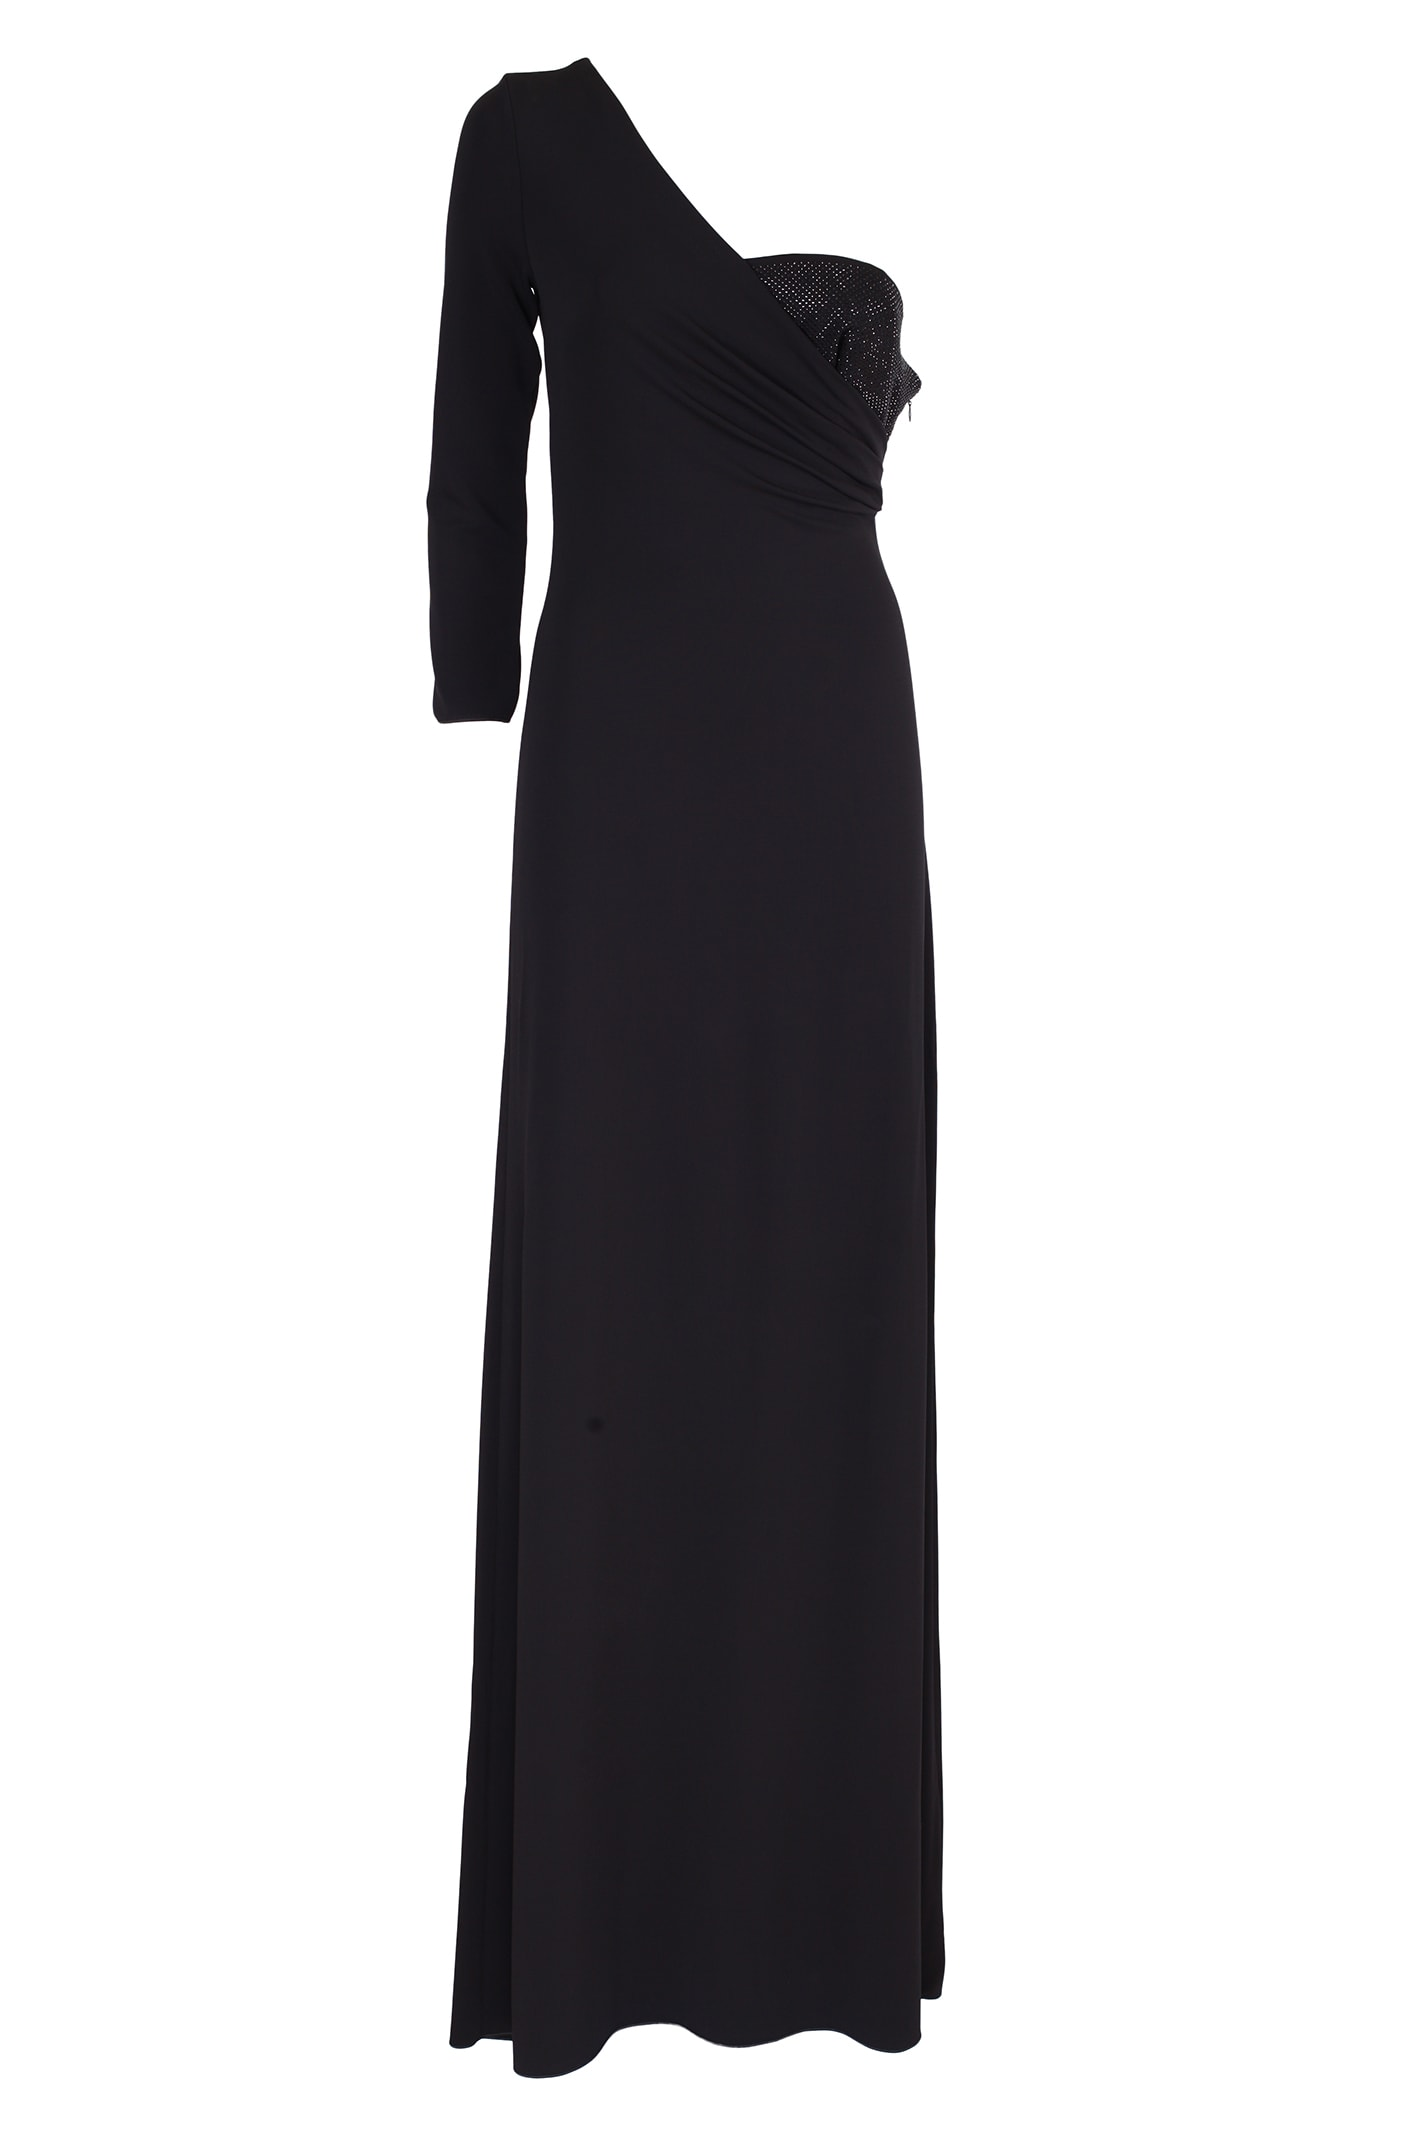 Emporio Armani long shoulder dress